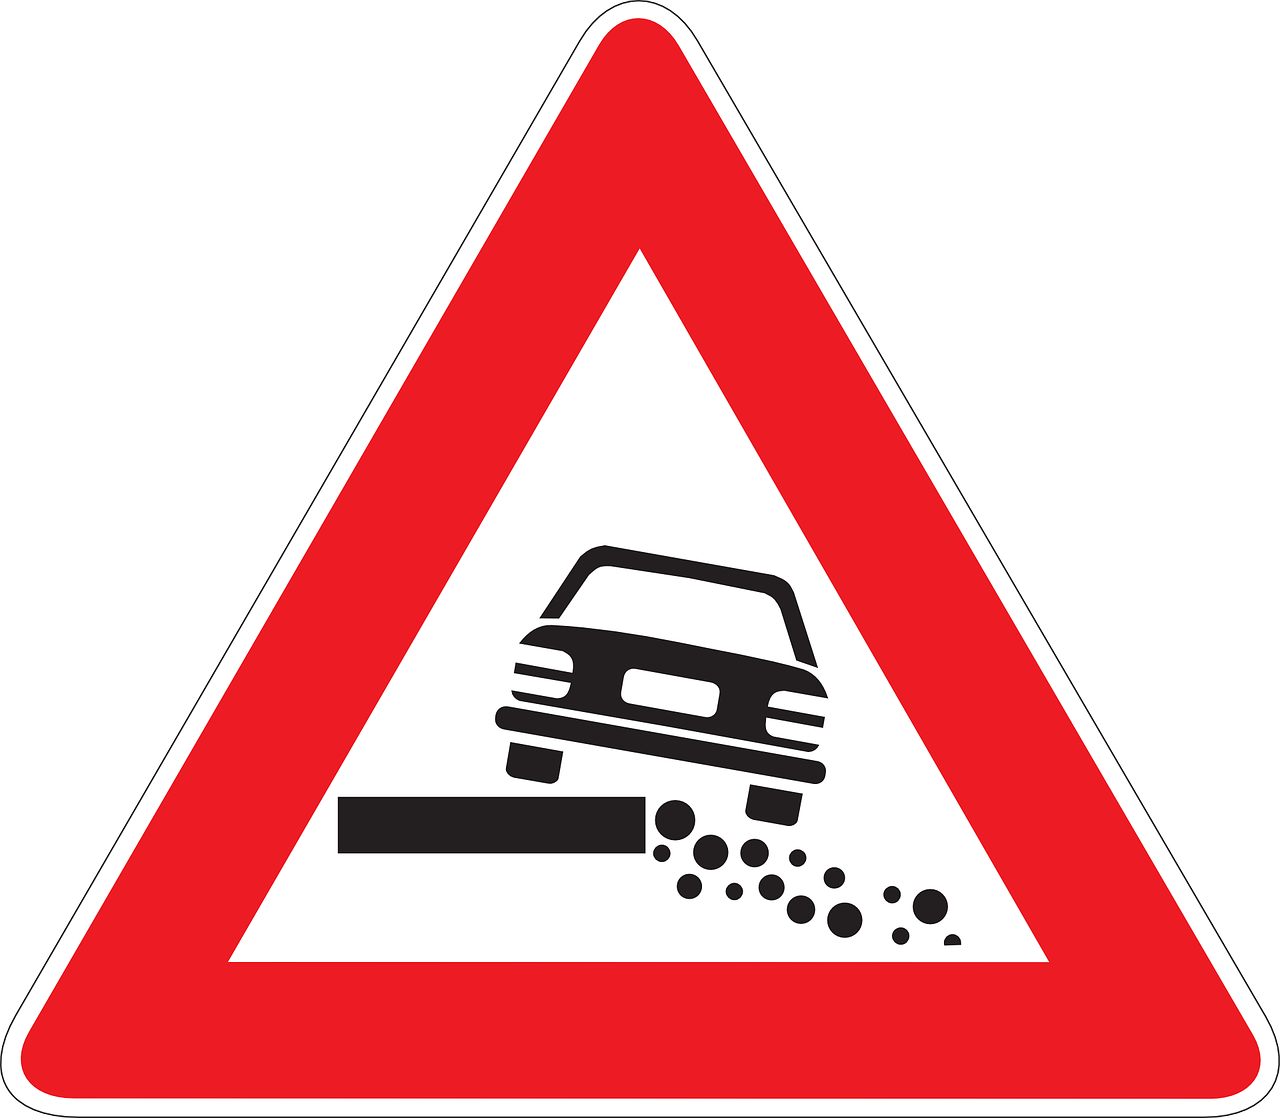 Drive Car Road Information Transparent Image All Traffic Signs Driving Traffic Signs